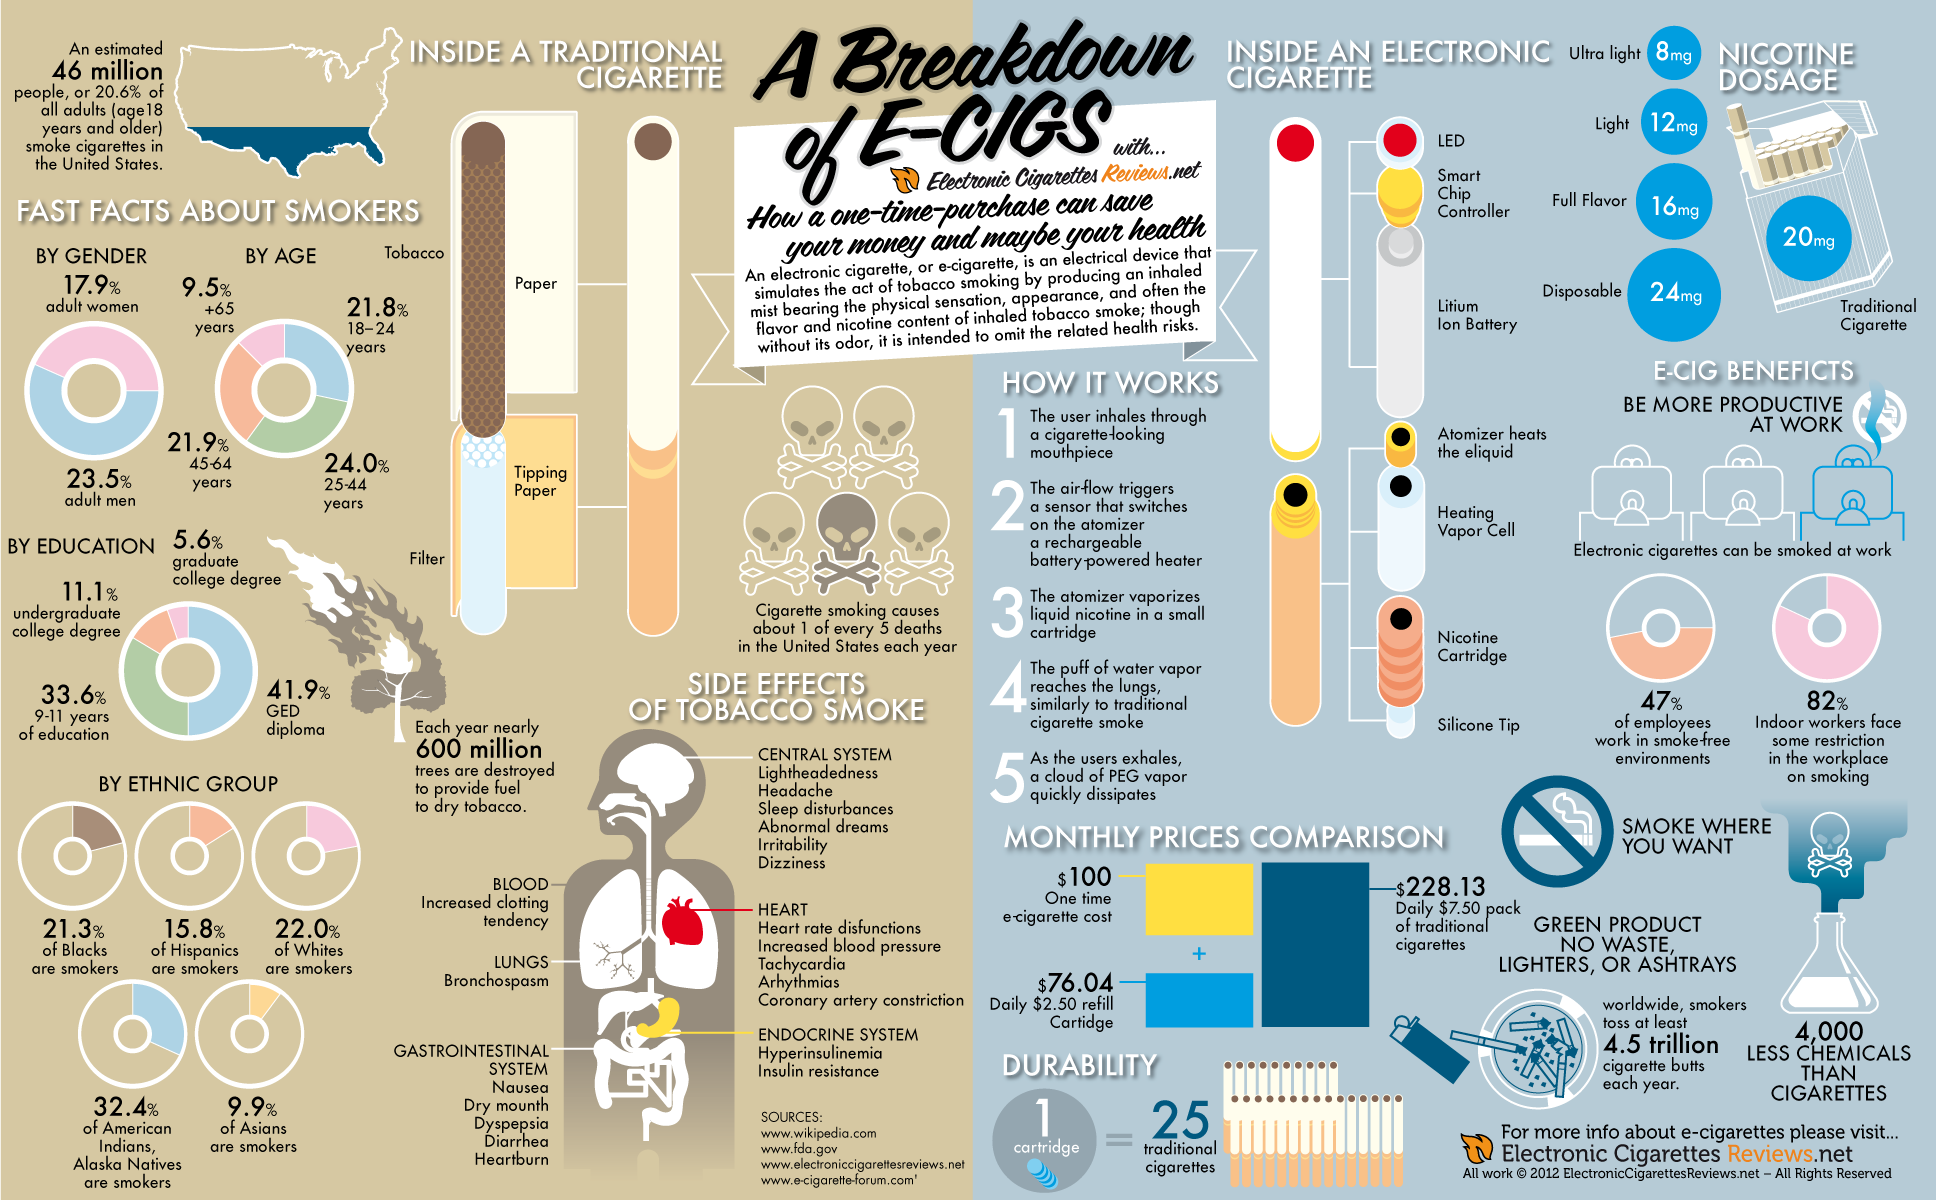 Breakdown-Of-Electronic-Cigarettes-infographic